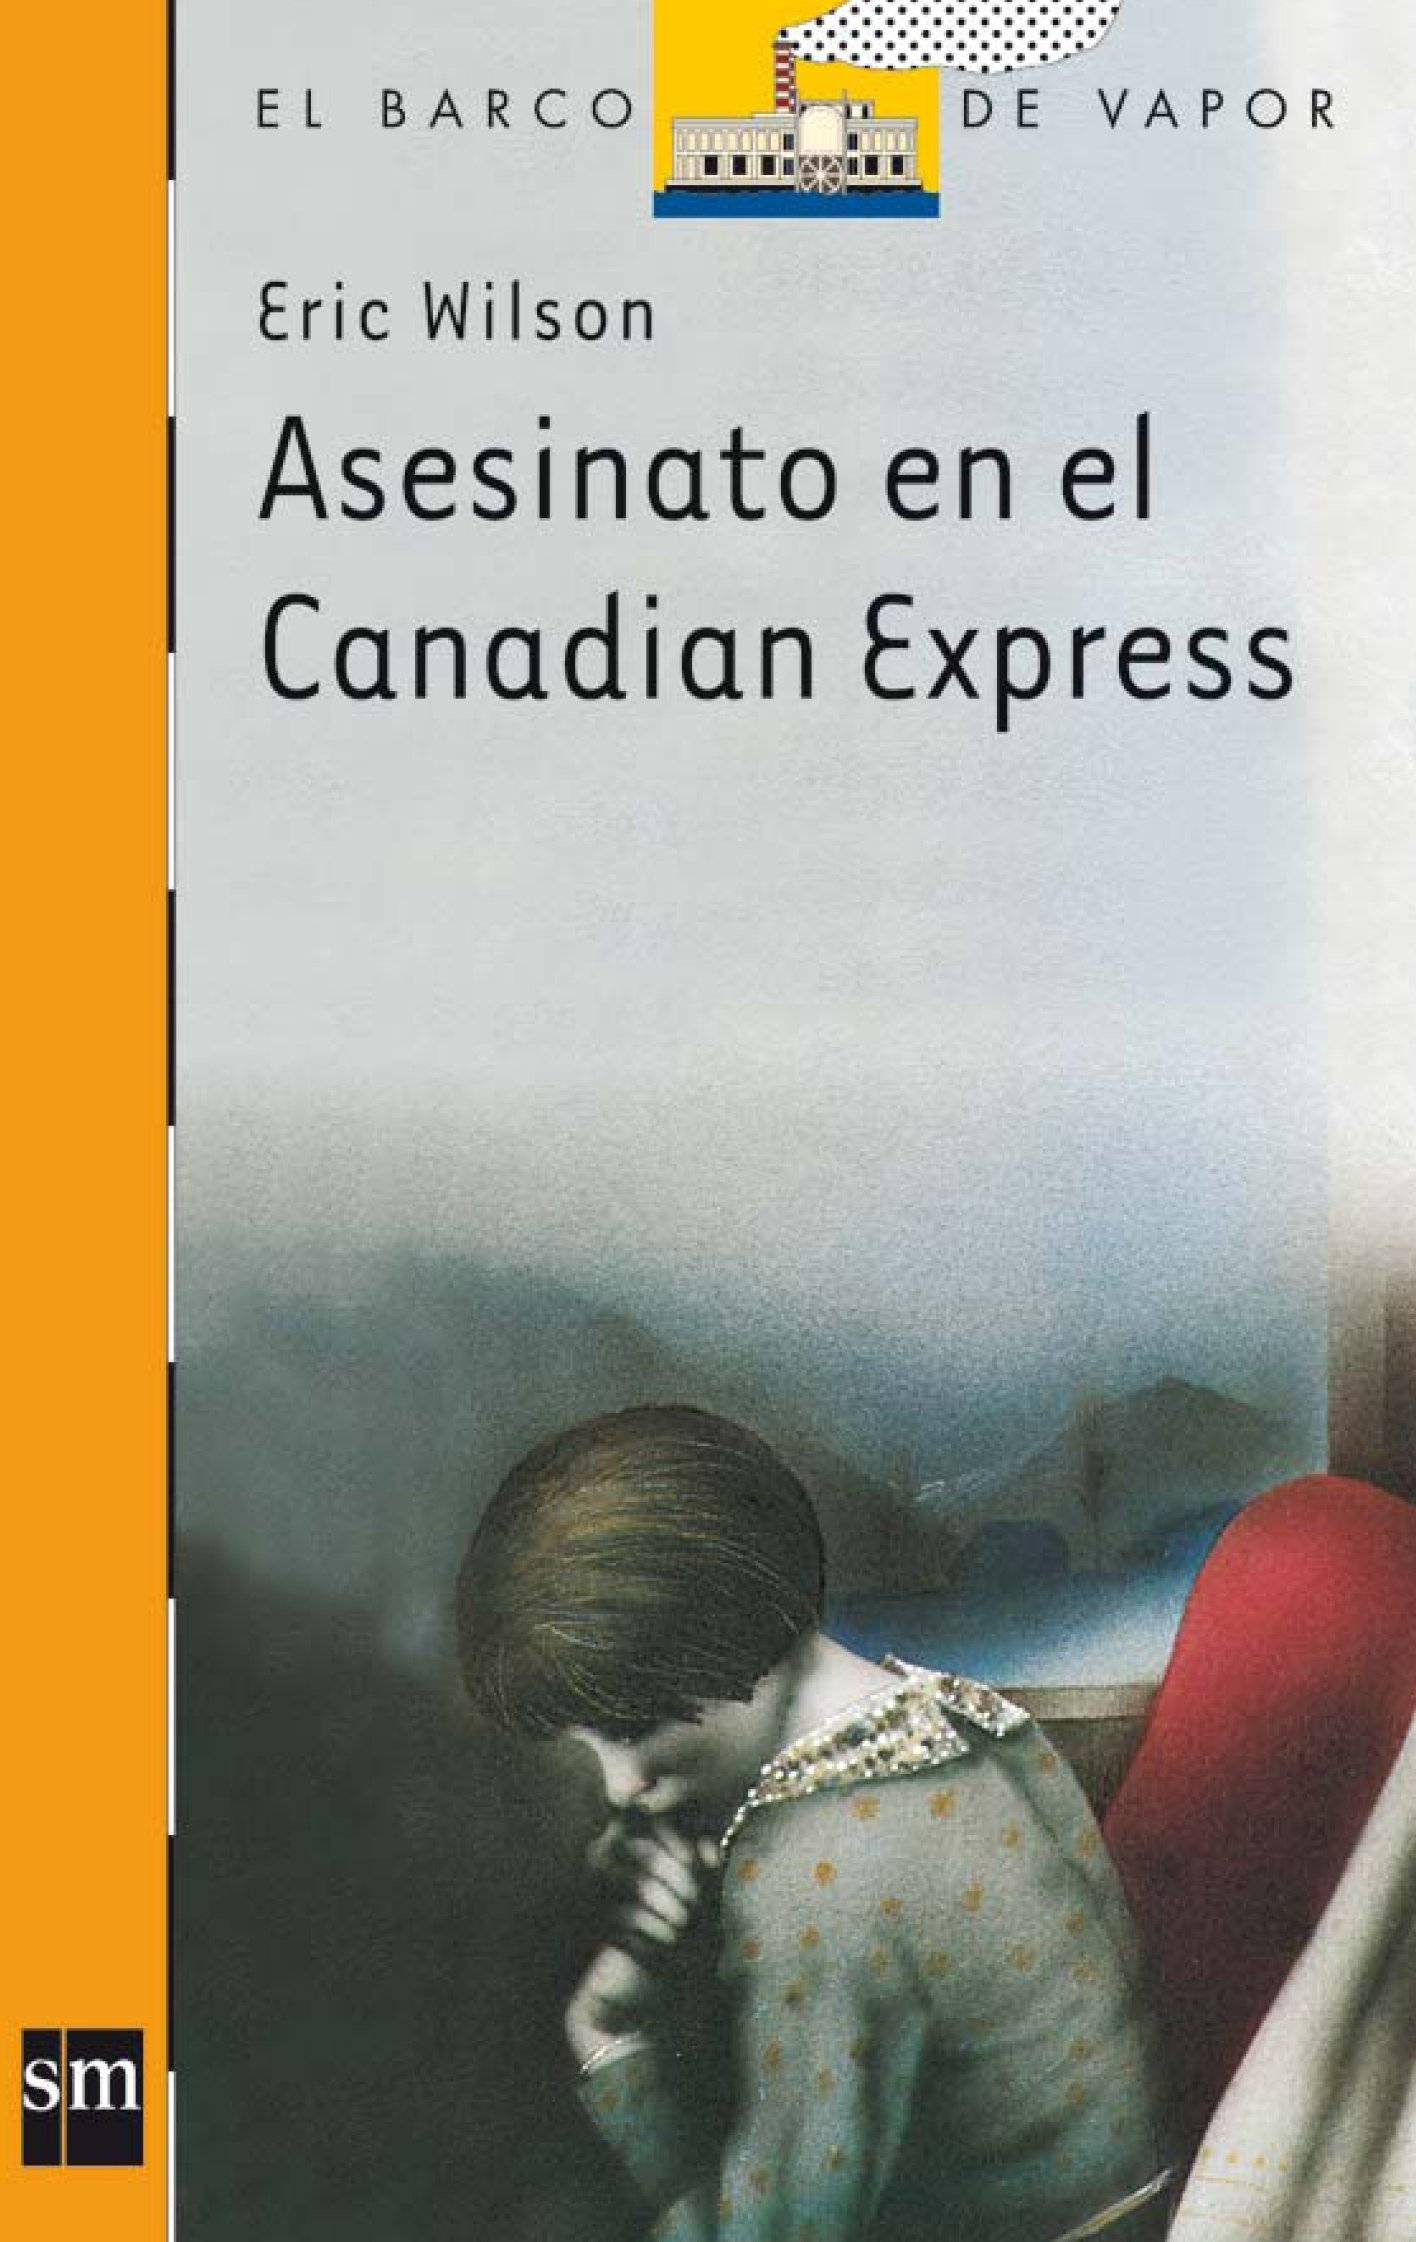 Amazon.com: Asesinato en el canadian express/ Murder on the canadian express (El barco de vapor) (Spanish Edition) (9788434811218): Eric Wilson: Books